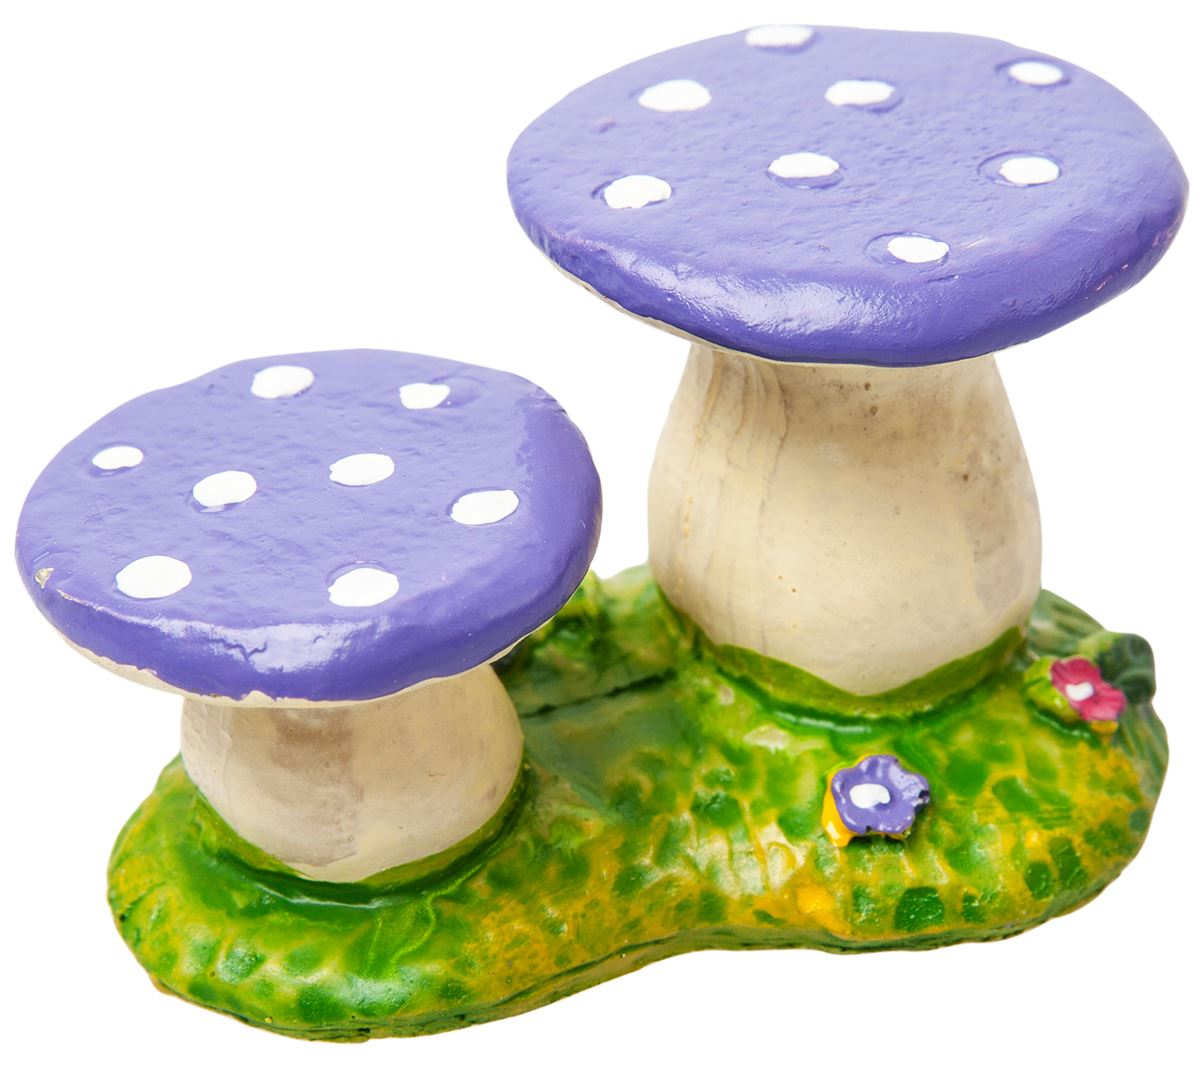 Toadstool Chairs: Miniature Fairy Garden Accessories Resin Toadstool Chairs